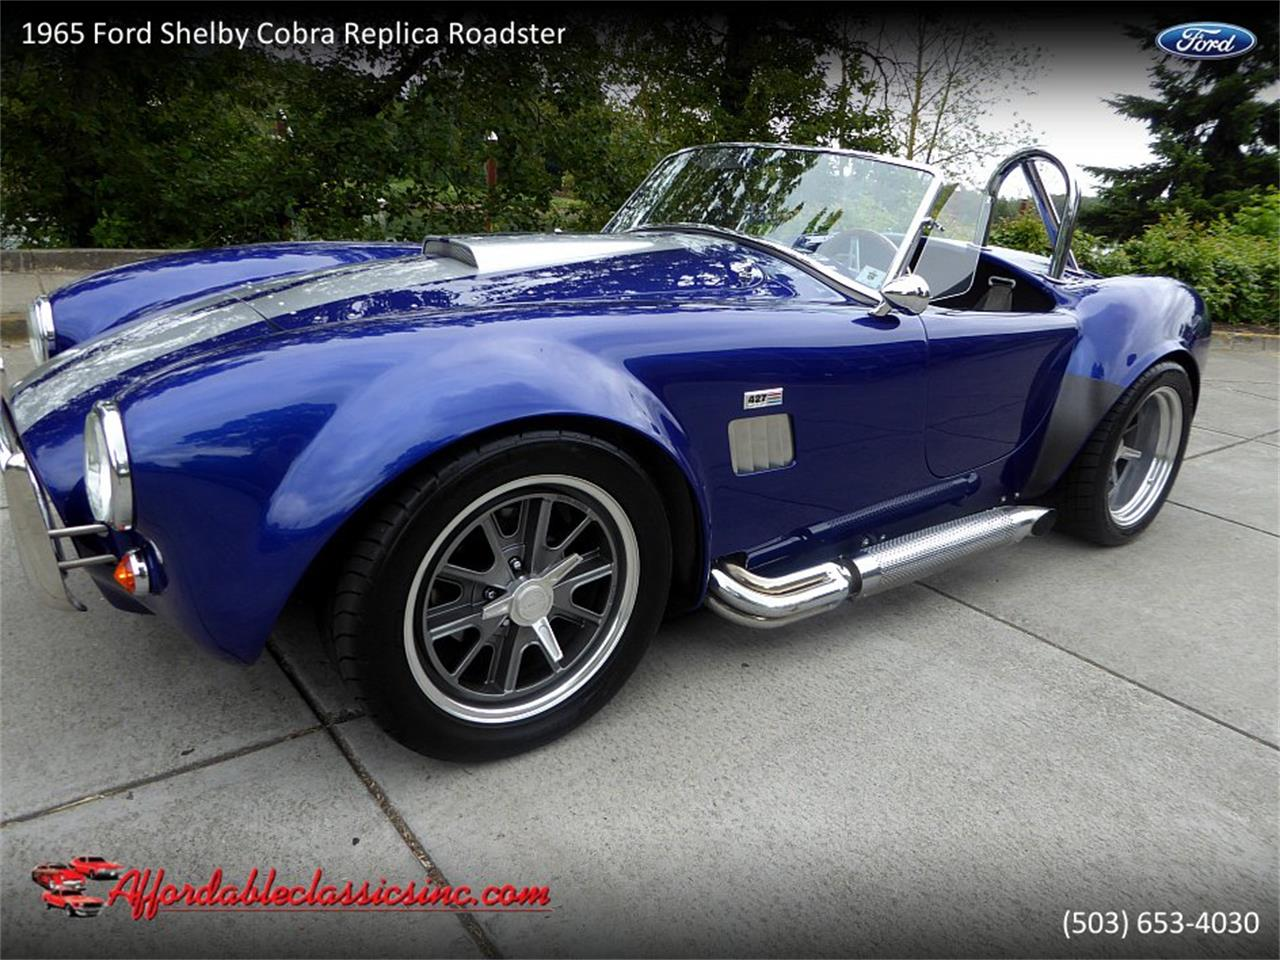 Large picture of 65 shelby cobra nnwt